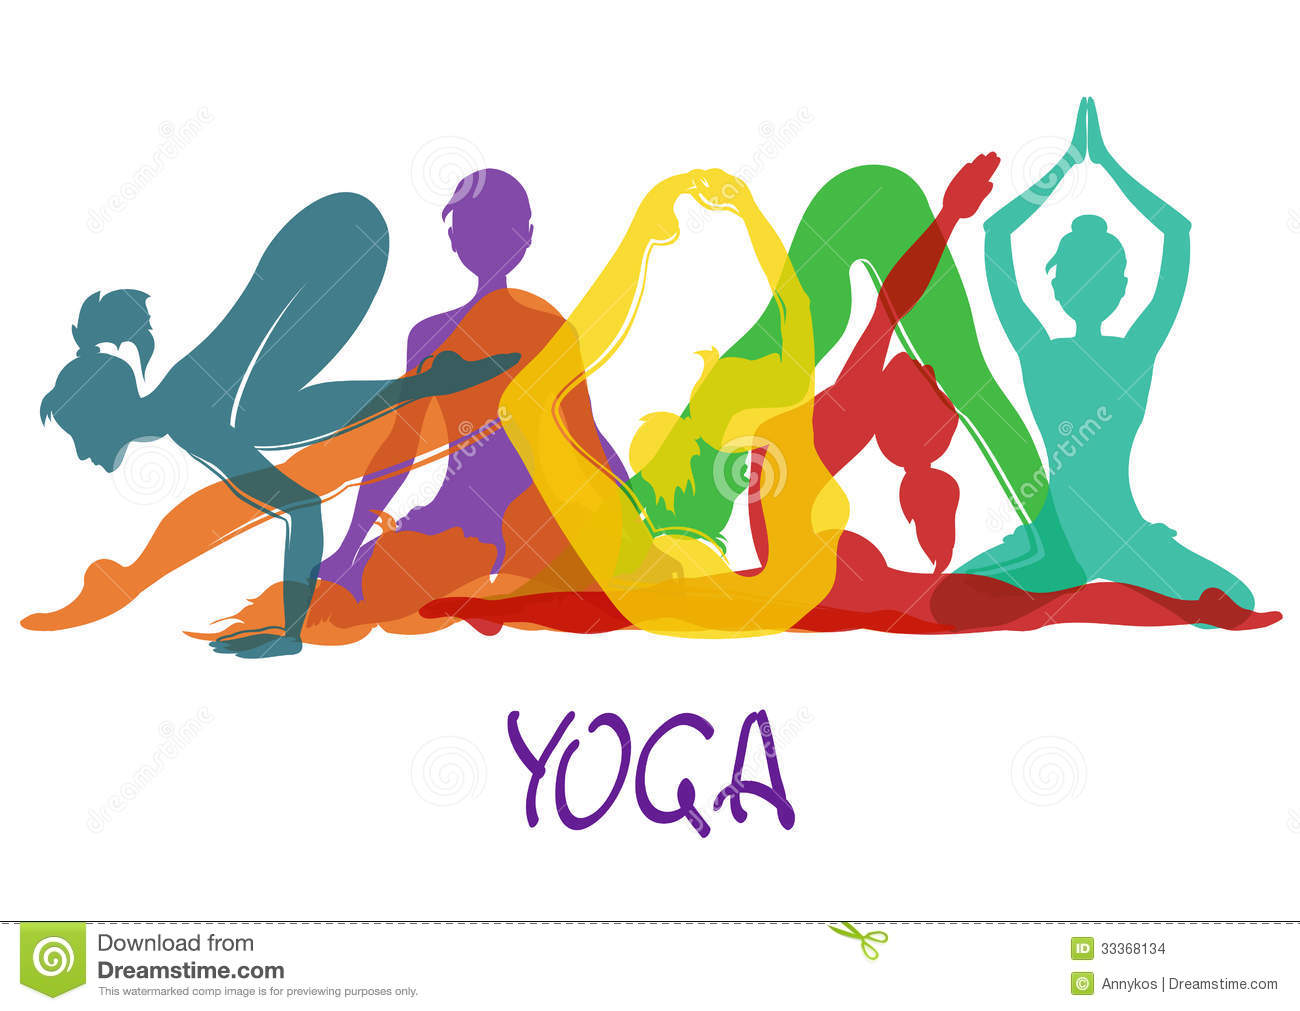 Seven Silhouettes Of Girl In Yoga Poses Stock Images - Image: 33368134